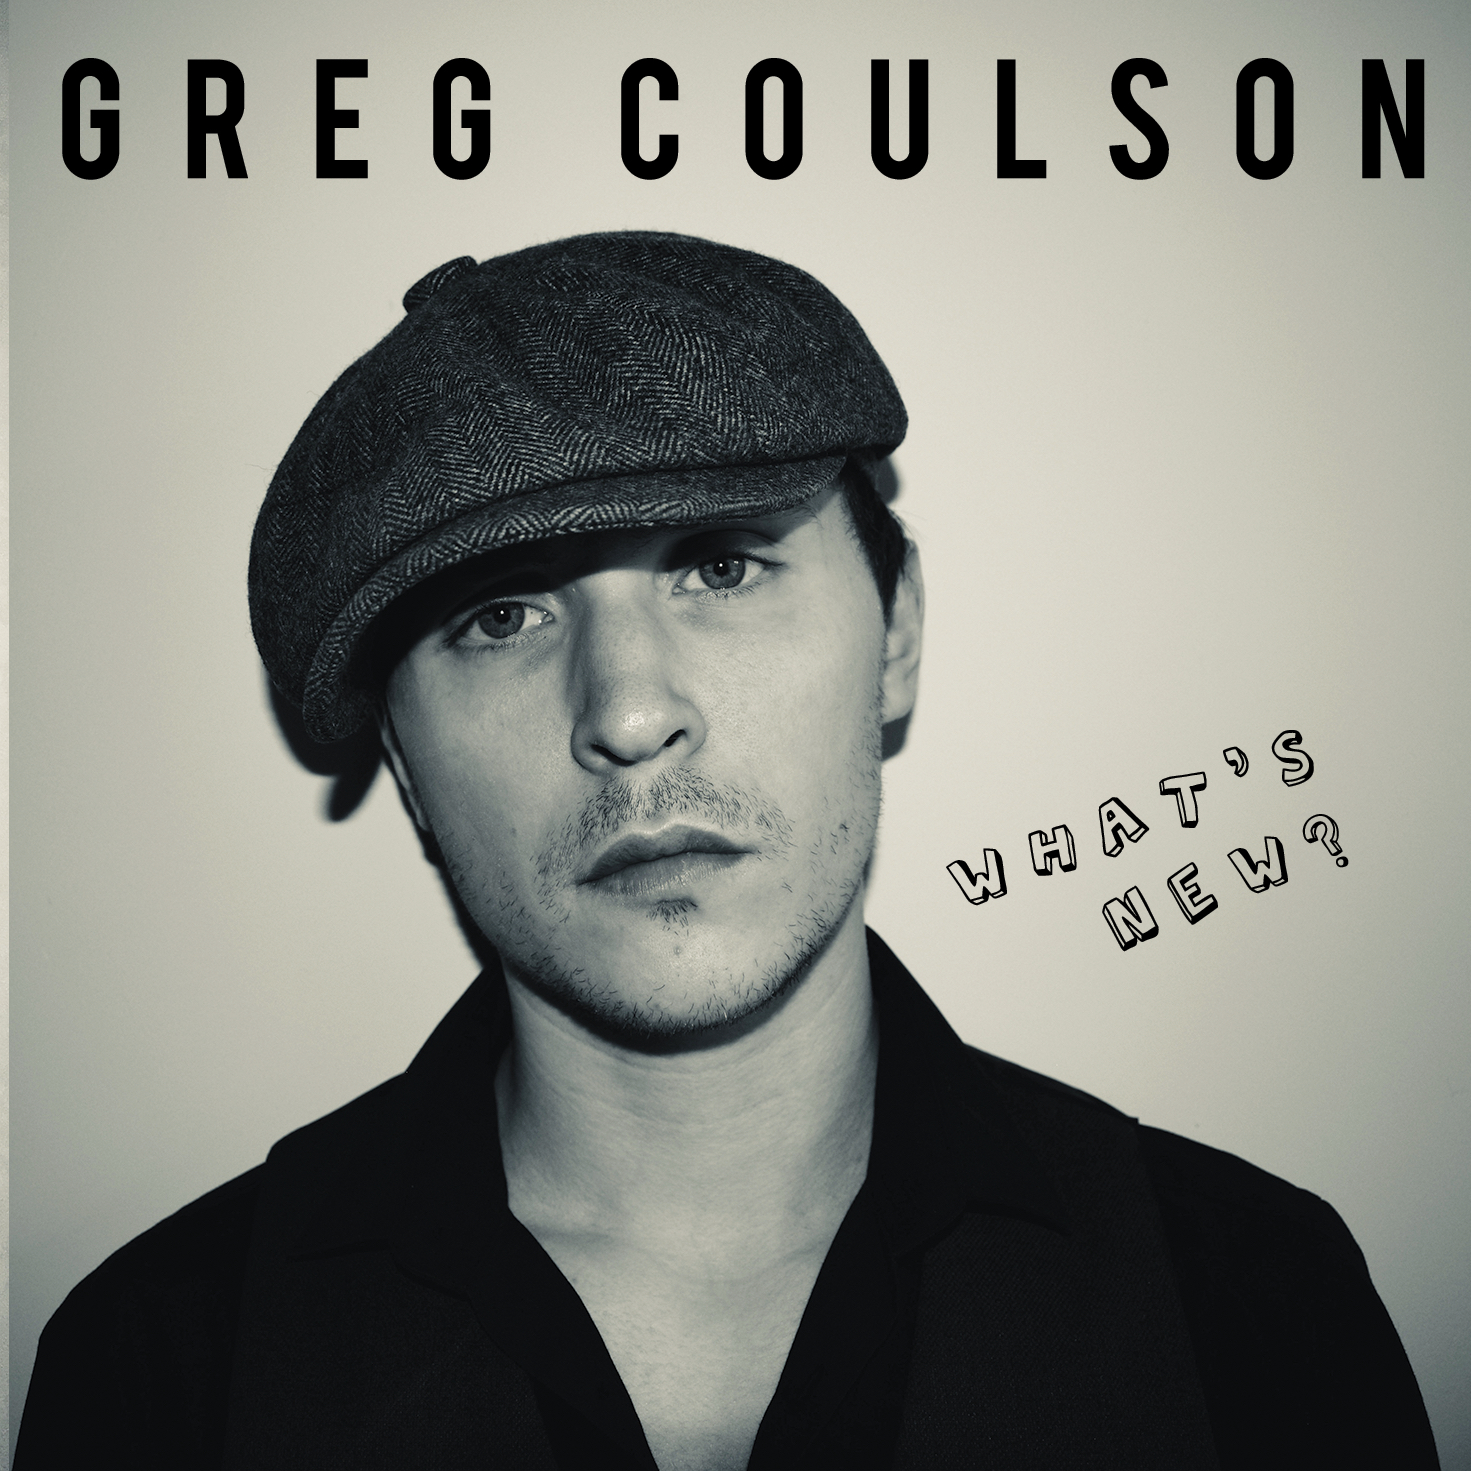 Greg Coulson - What's New? - Album